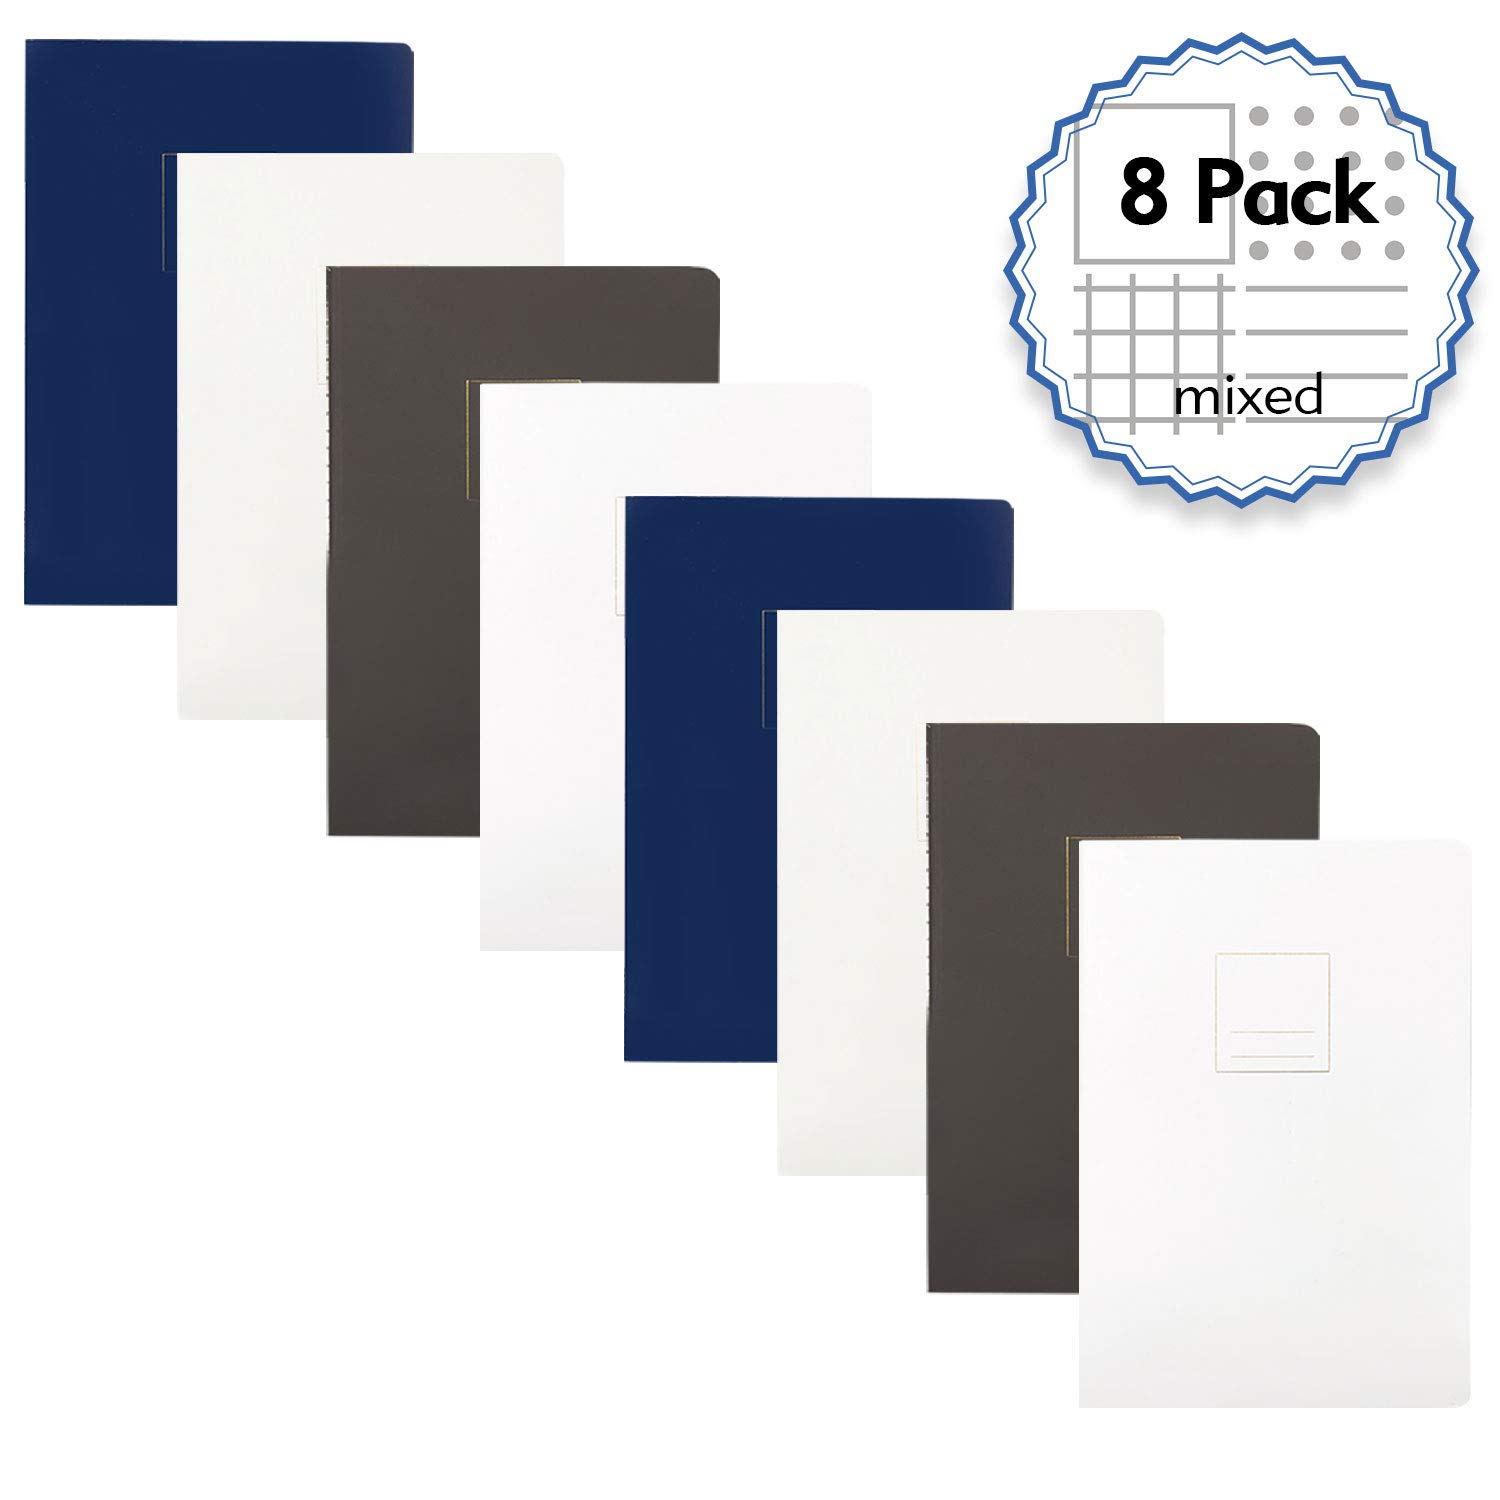 A5 Size 8.2 x 5.8 inch,100gsm Paper,320 Sheets//640Pages Composition books Graph Paper Simple Cover Design with 5mm Graph Pages All Grid, 8 Pack